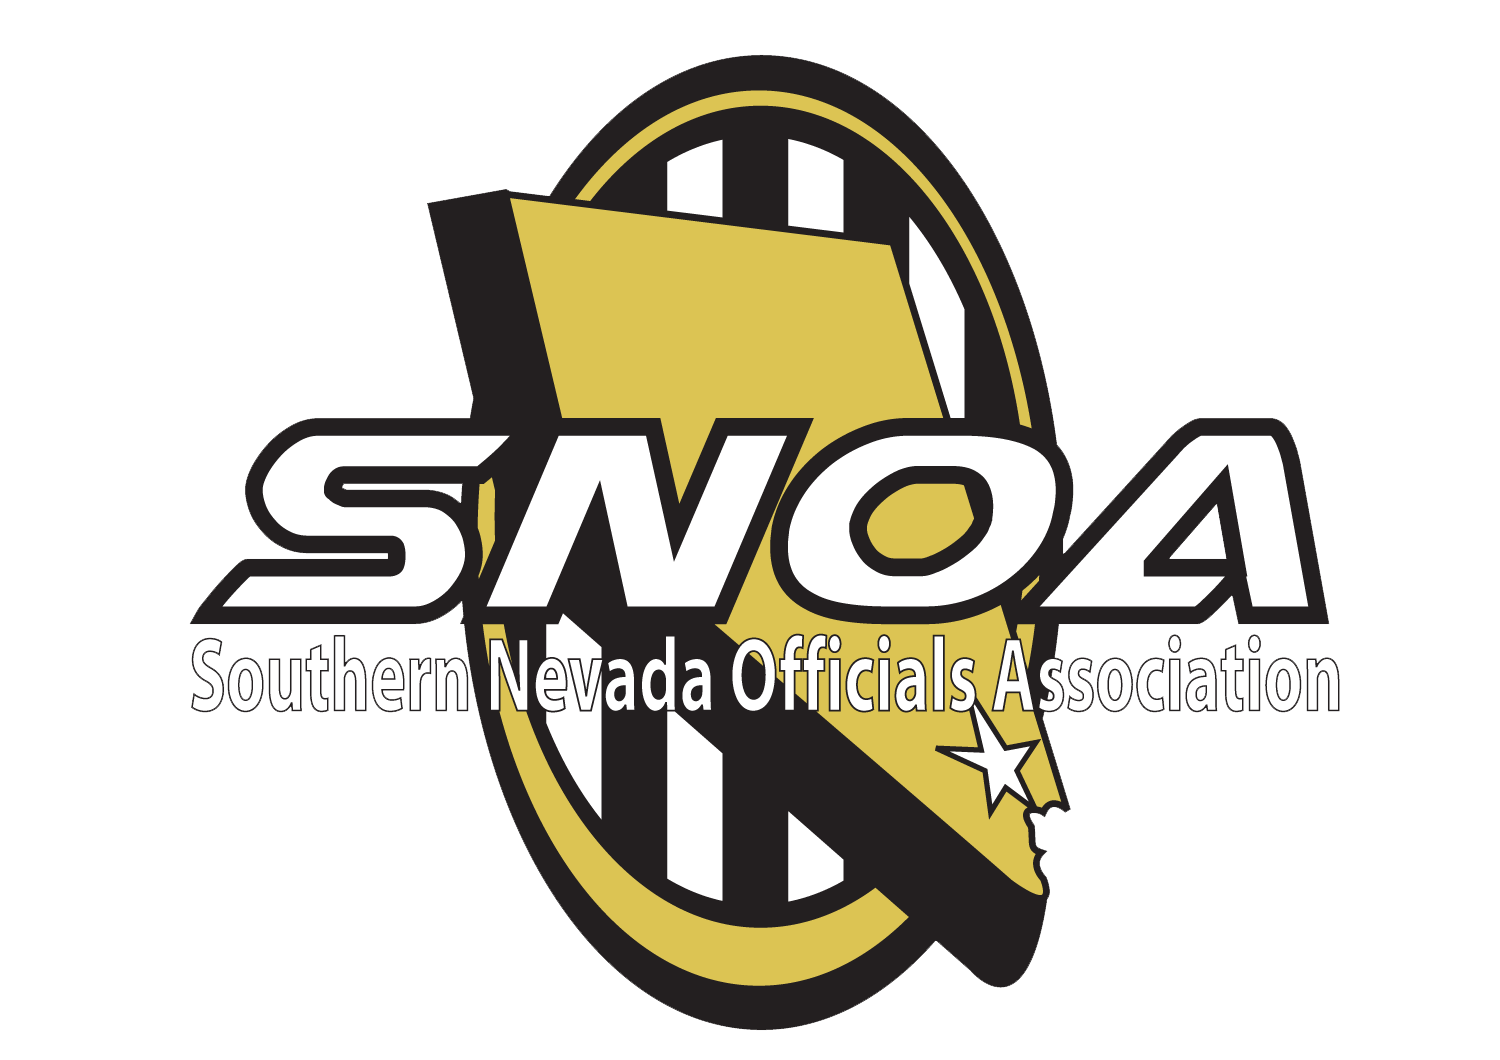 Southern Nevada Officials Association